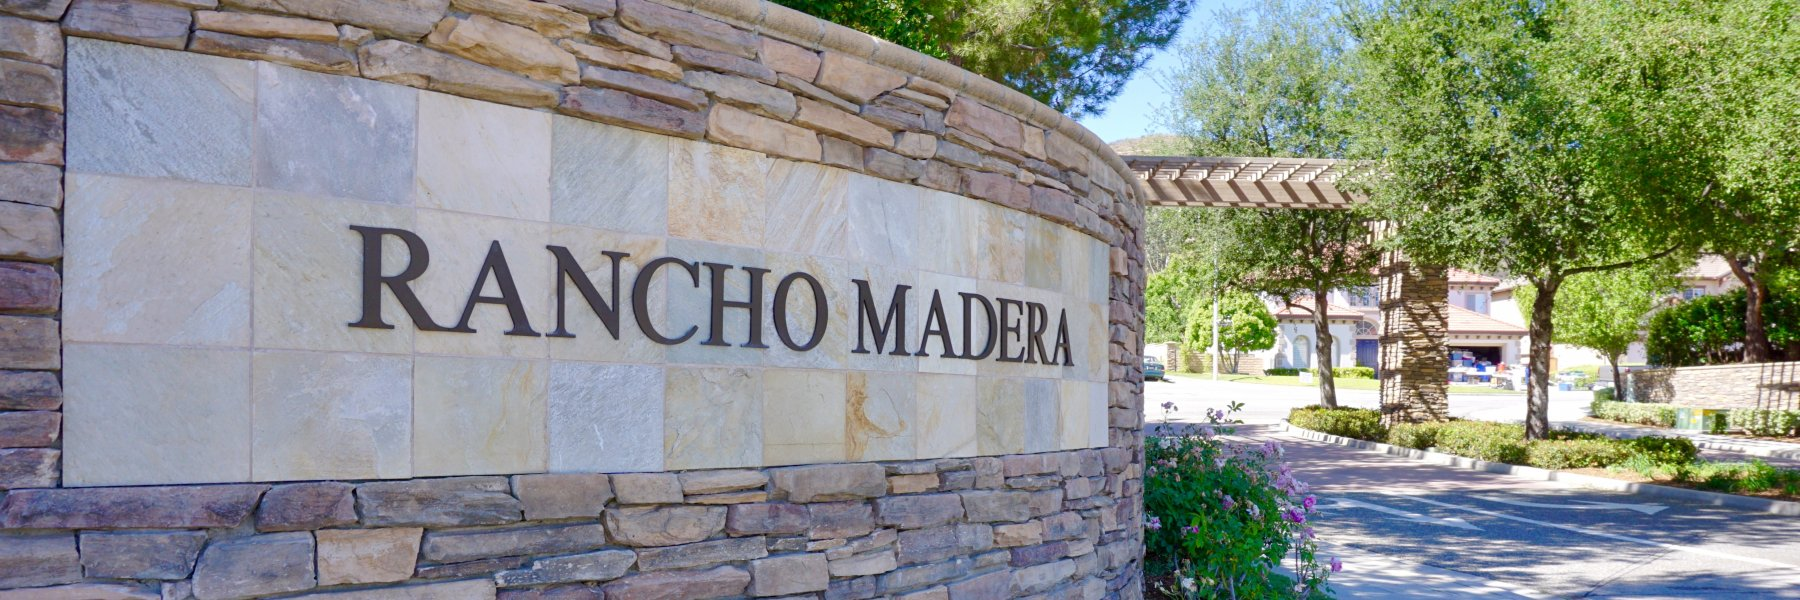 Rancho Madera is a community of homes in Simi Valley California